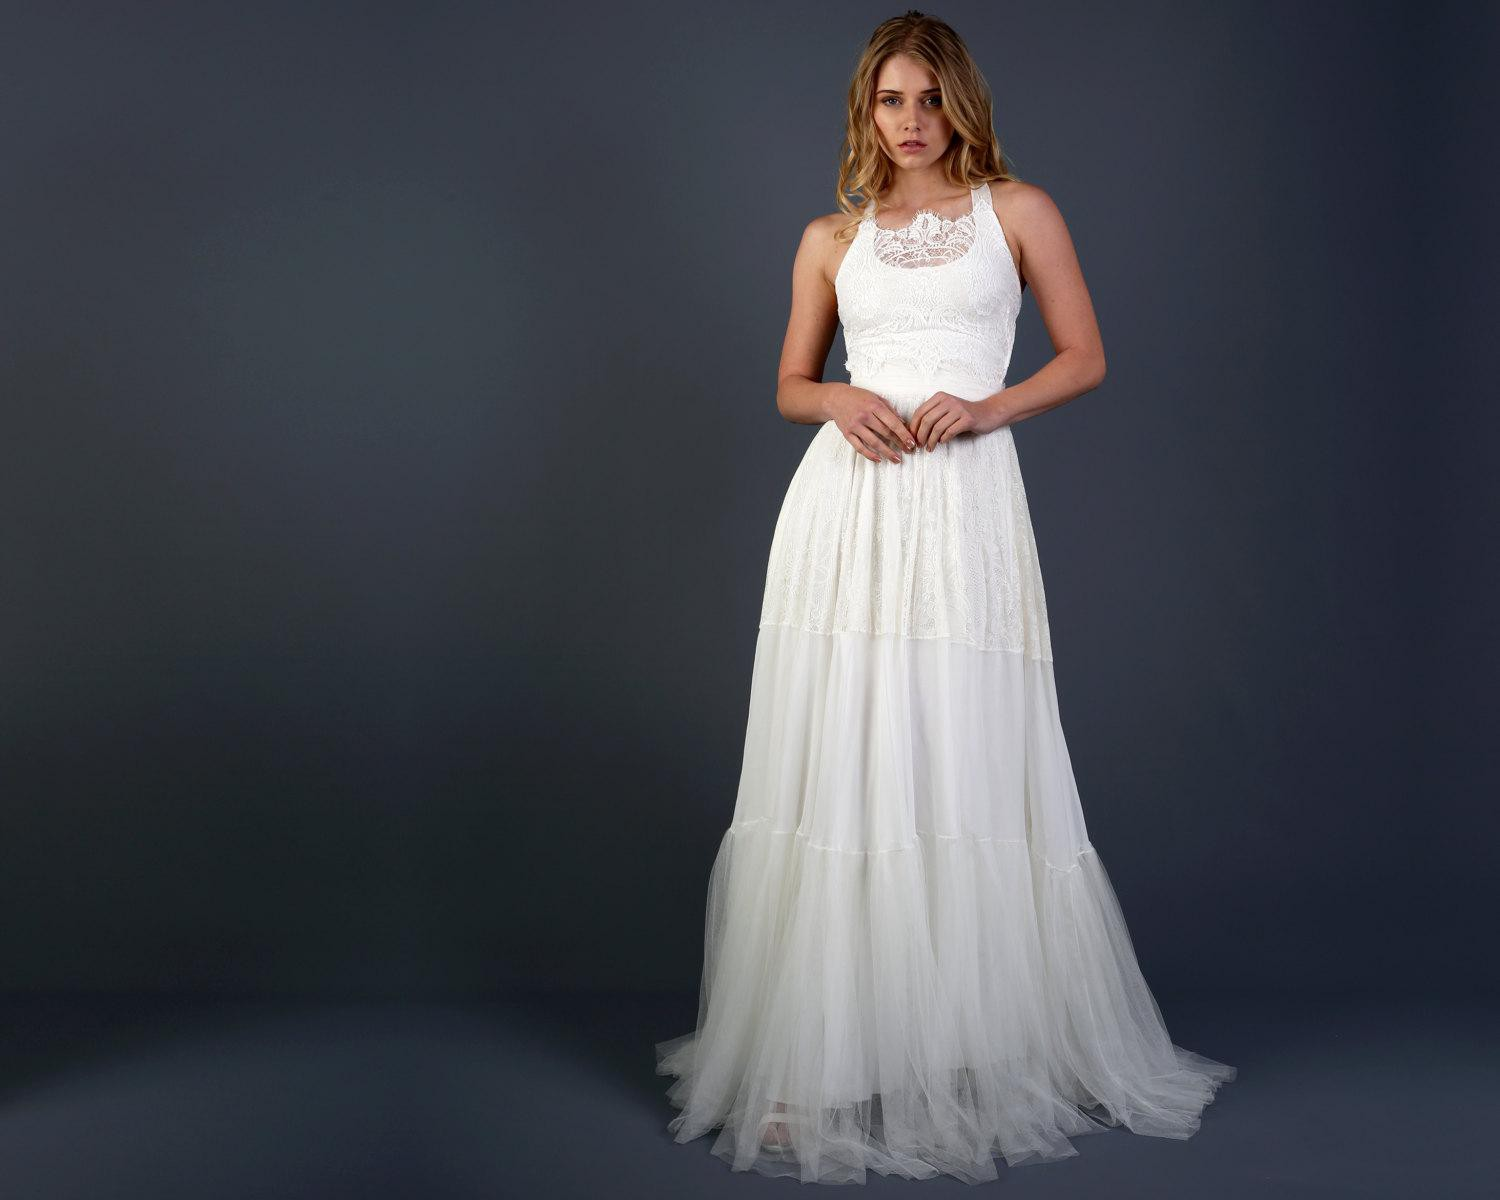 Cheap Wedding Dresses Lace: Scoop Neck Sleeveless A-Line Lace And Tulle Wedding Dress